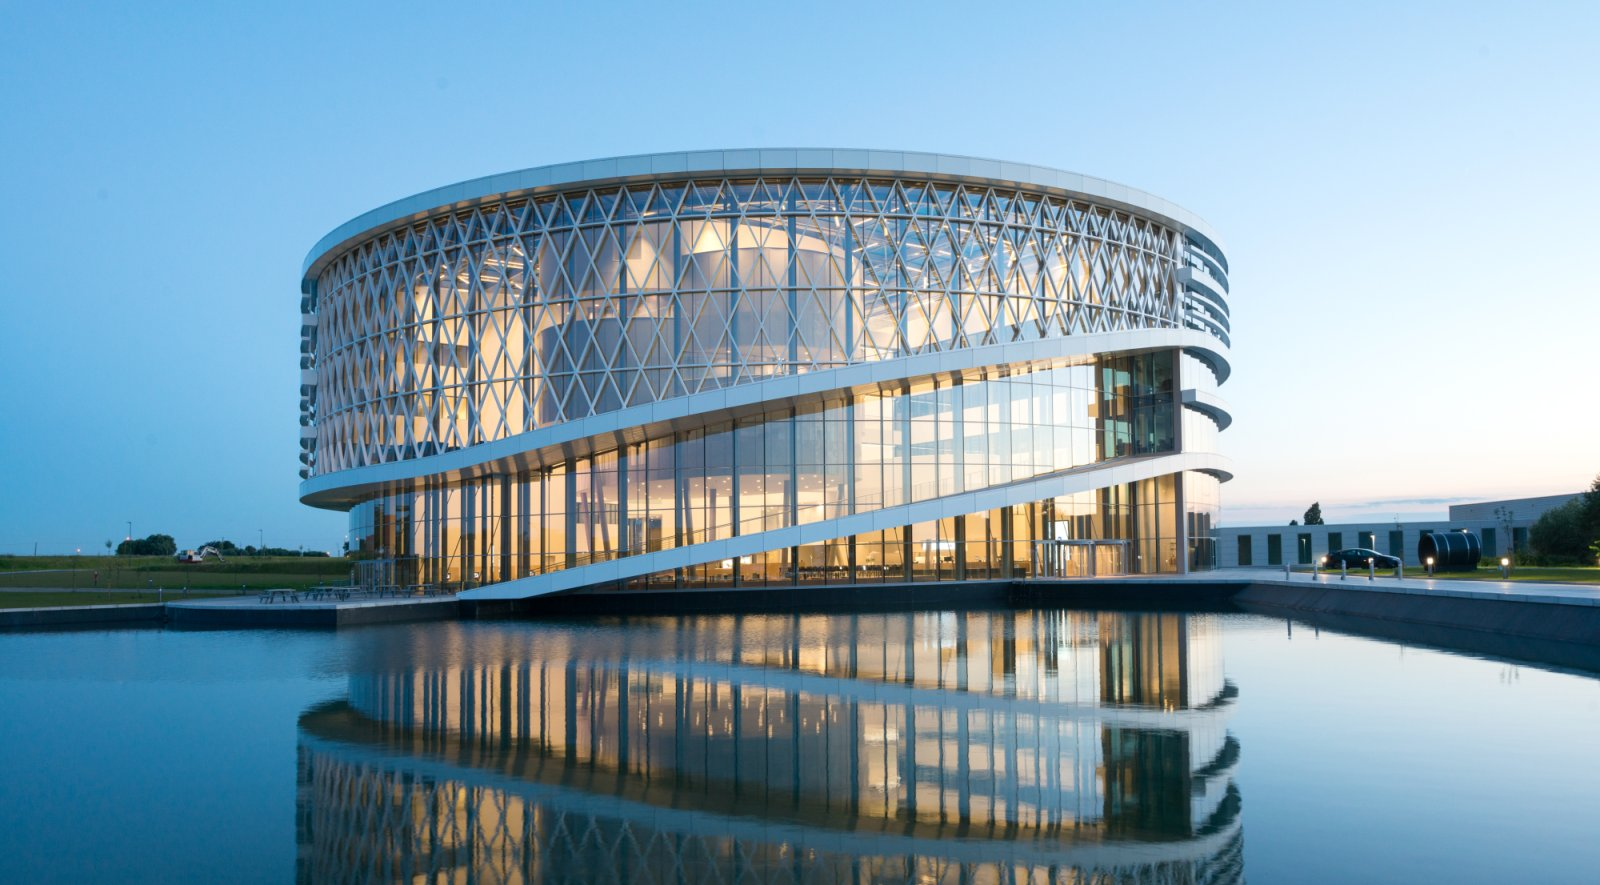 New Barco headquarters